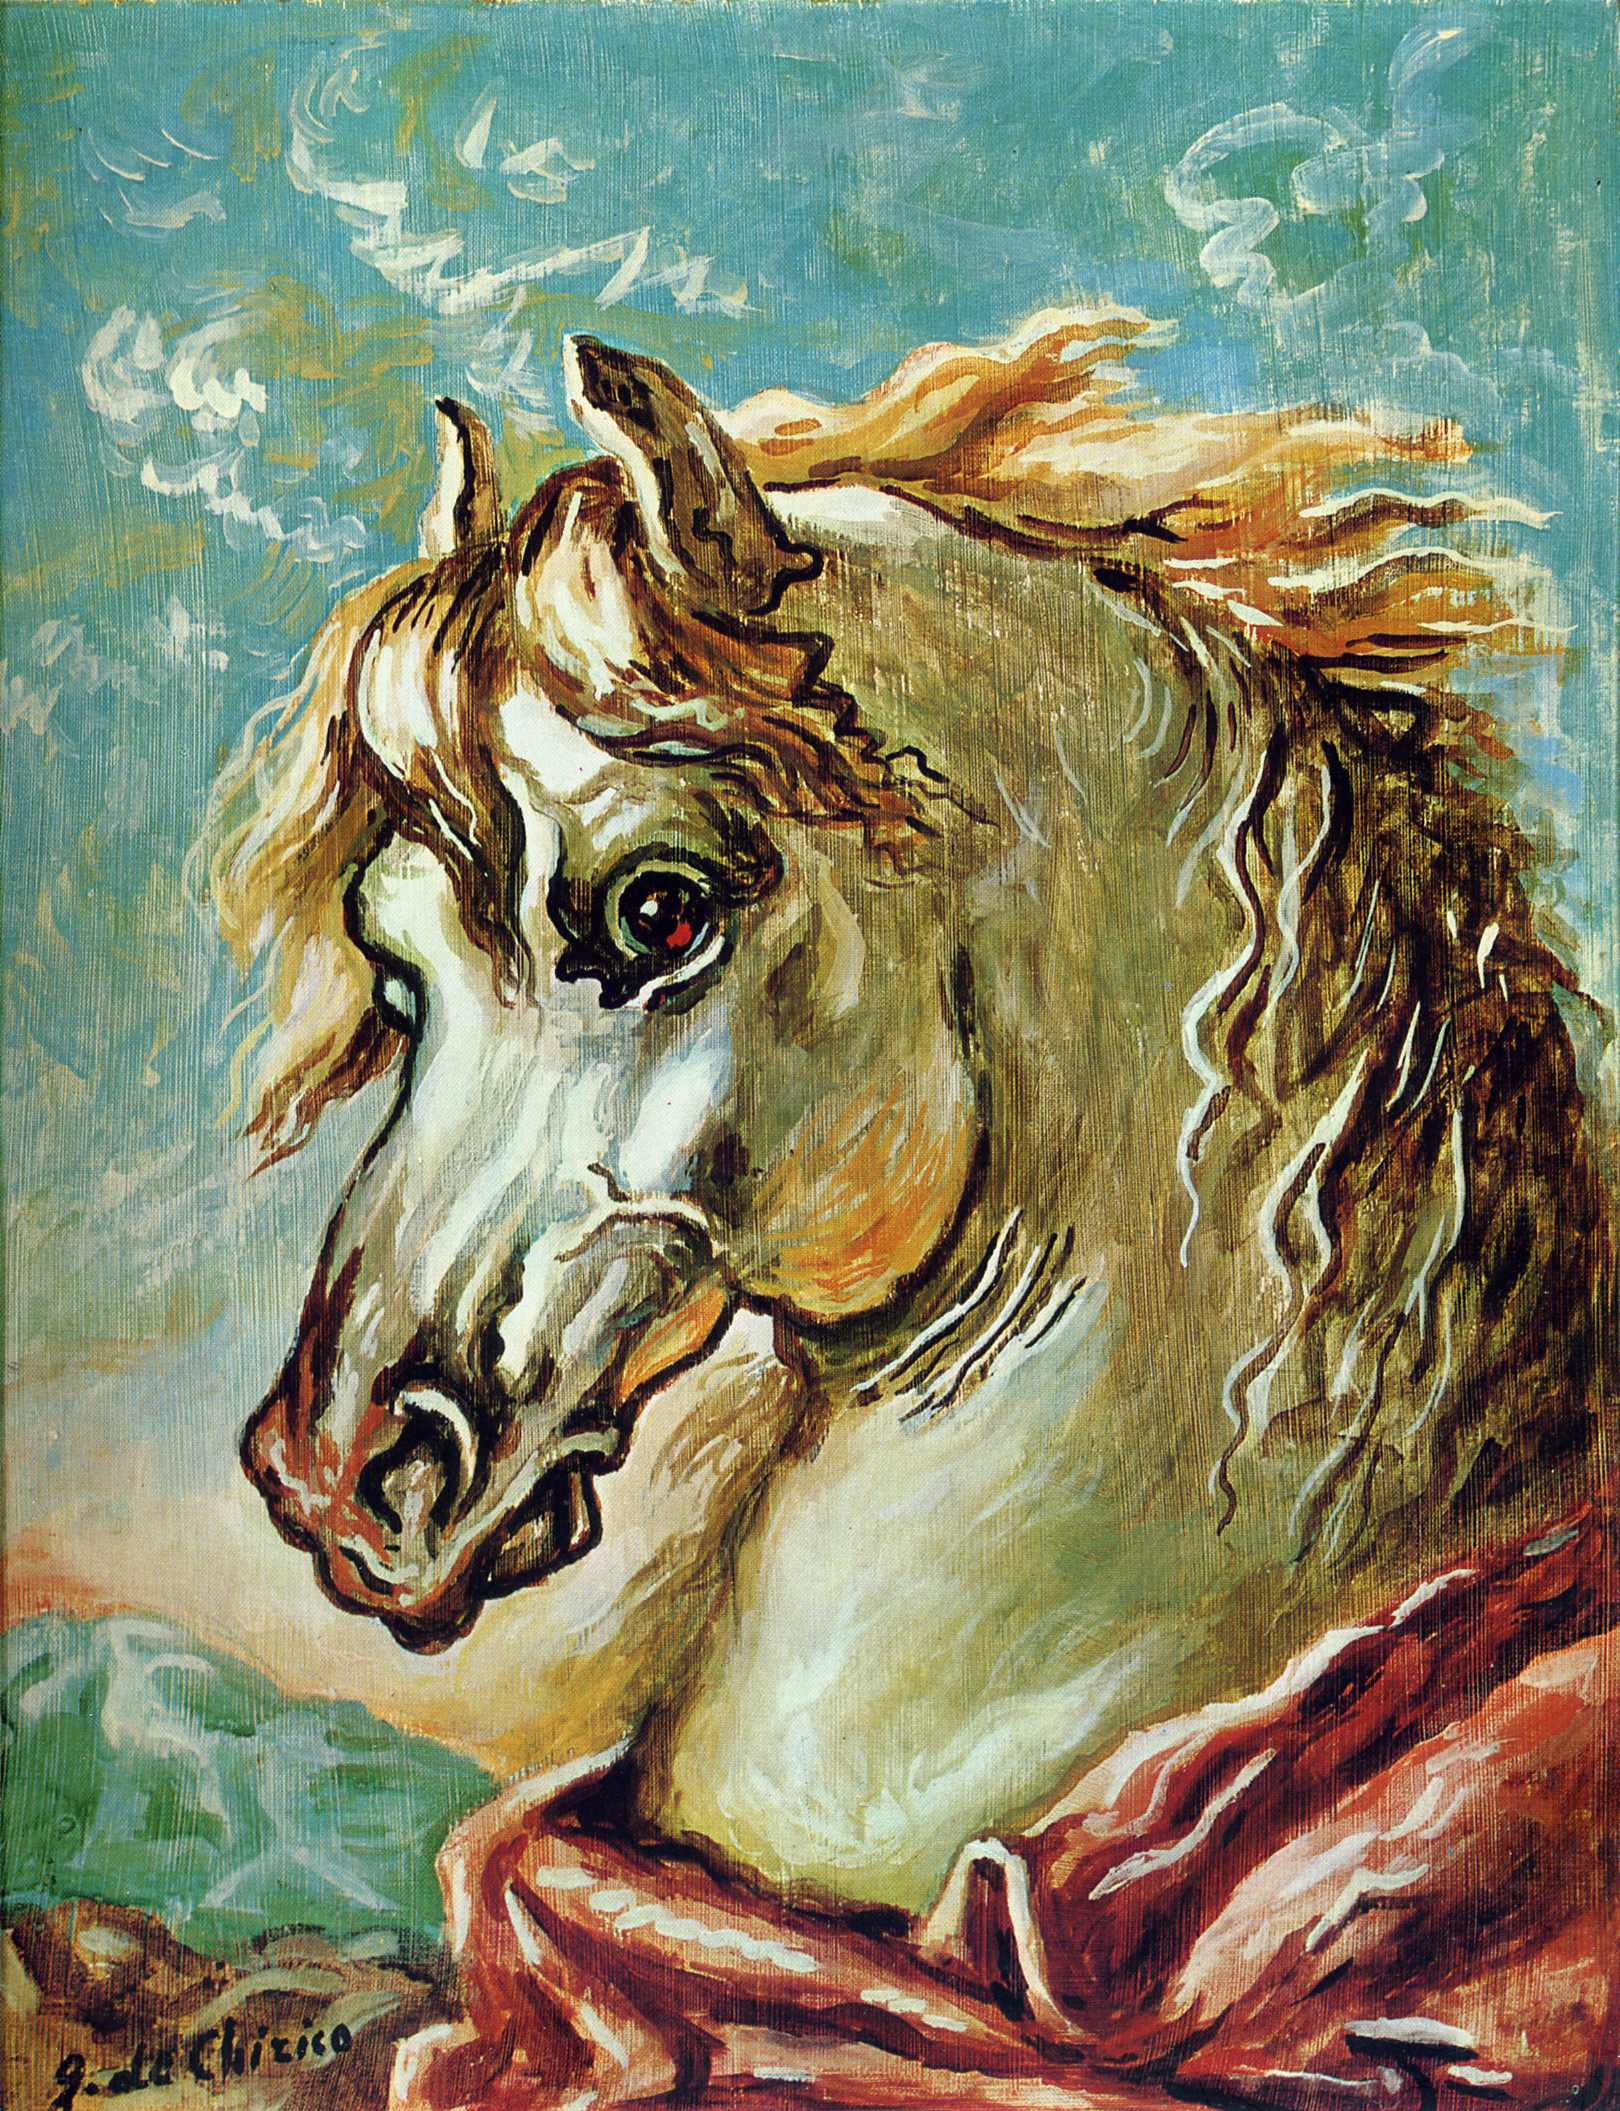 White horse's head with mane in the wind